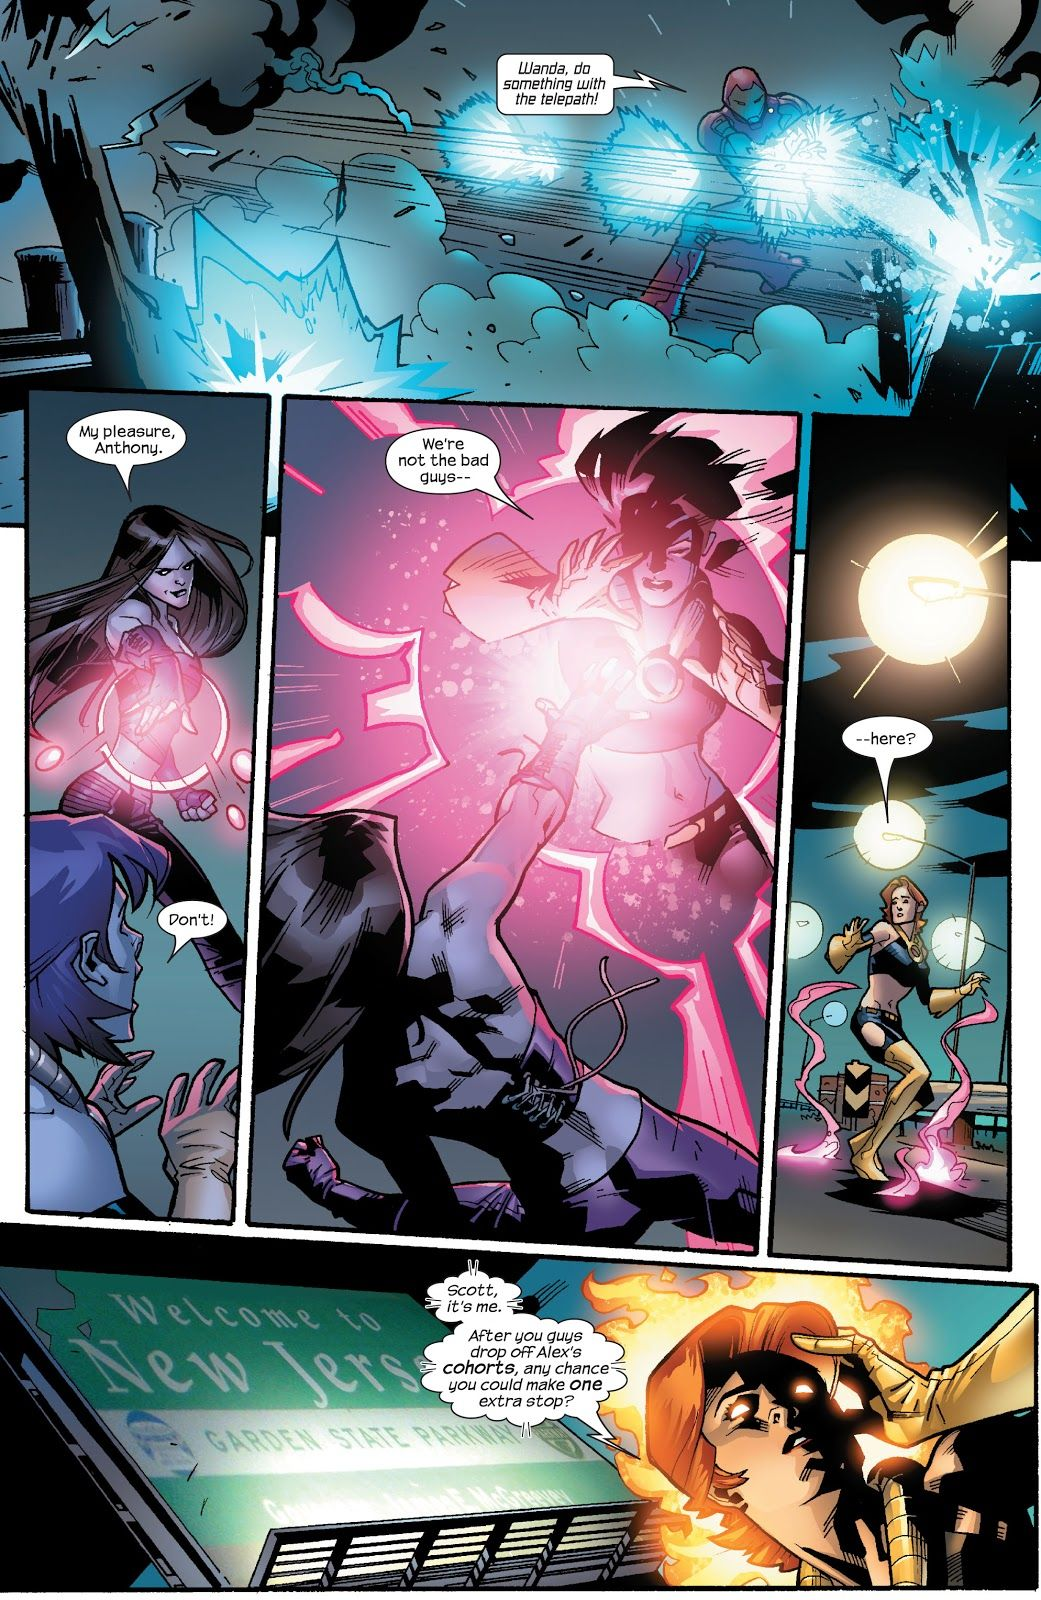 Ultimate X Men Issue 64 Read Ultimate X Men Issue 64 Comic Online In High Quality Scarlet Witch Marvel Comics Online